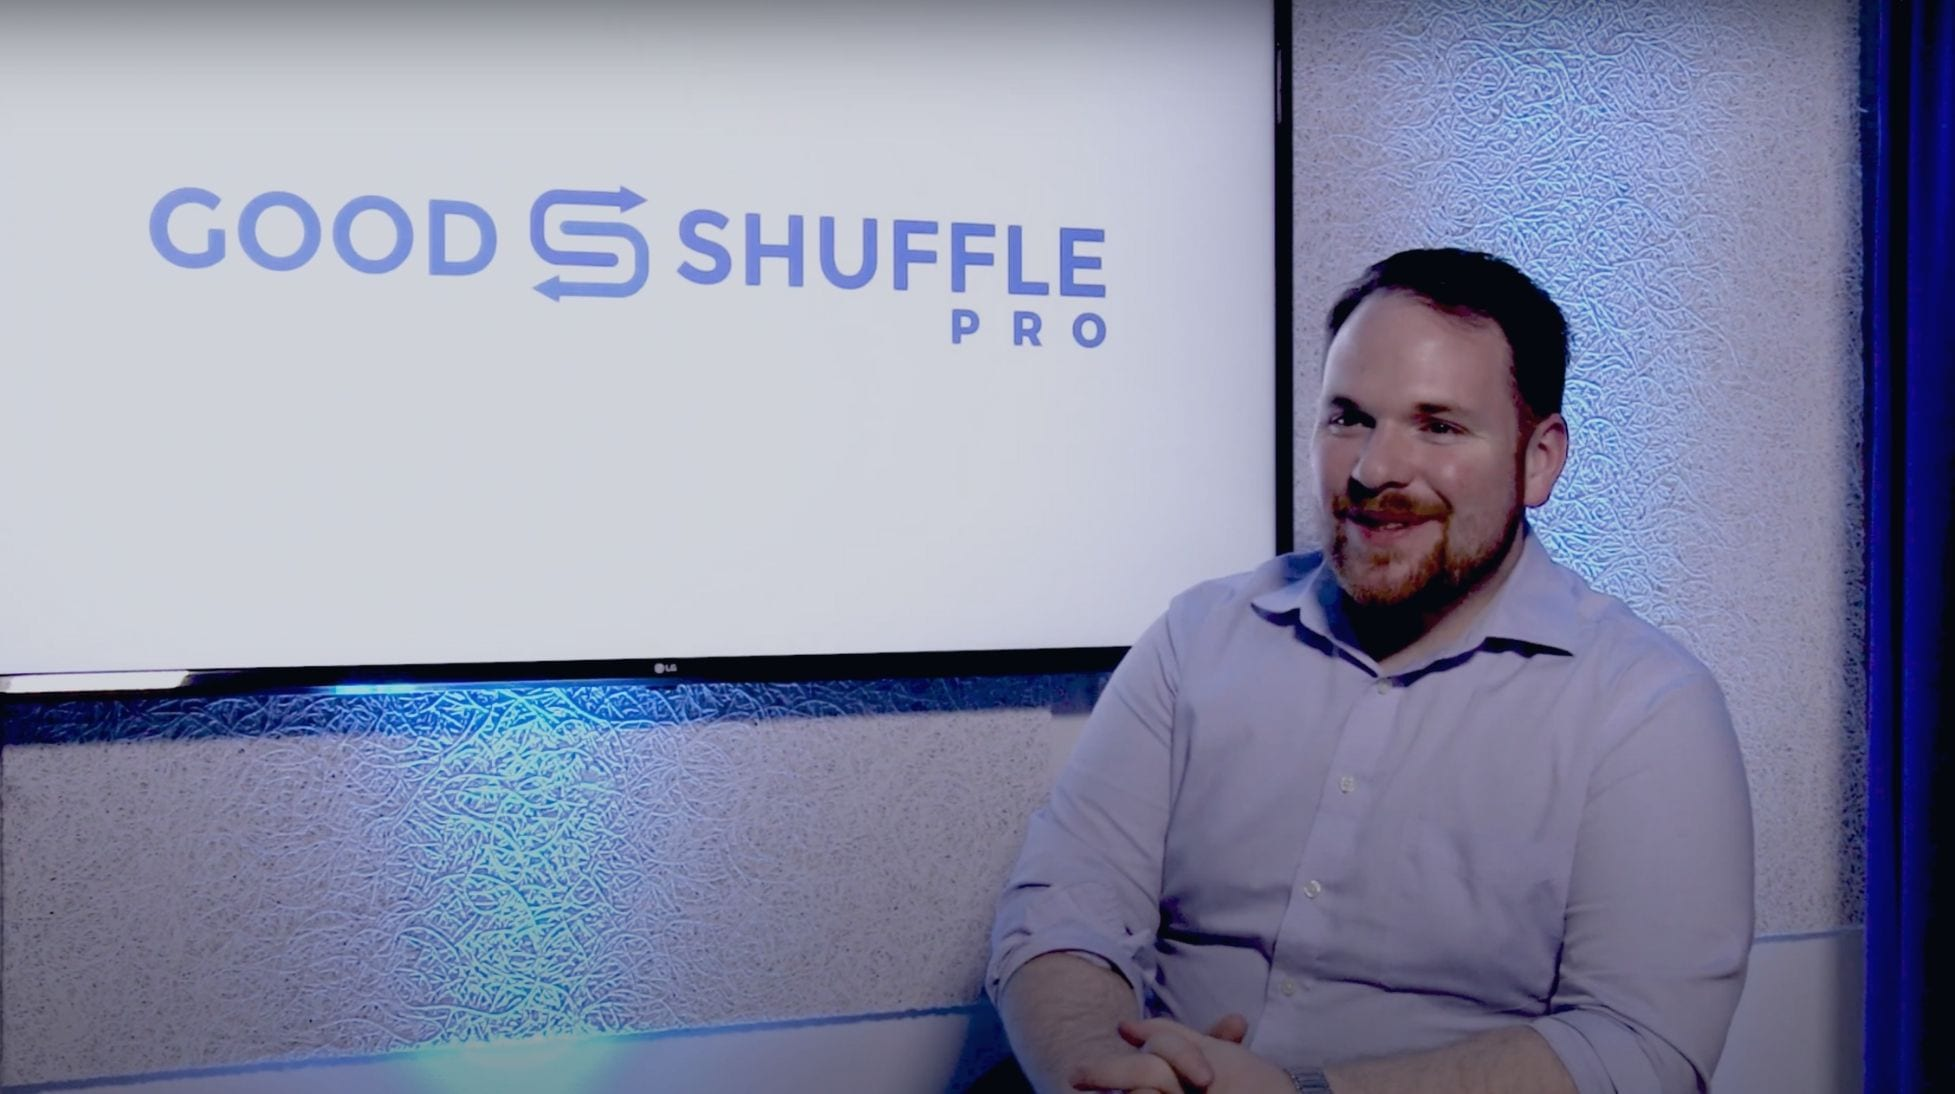 Goodshuffle Pro AV event software demo